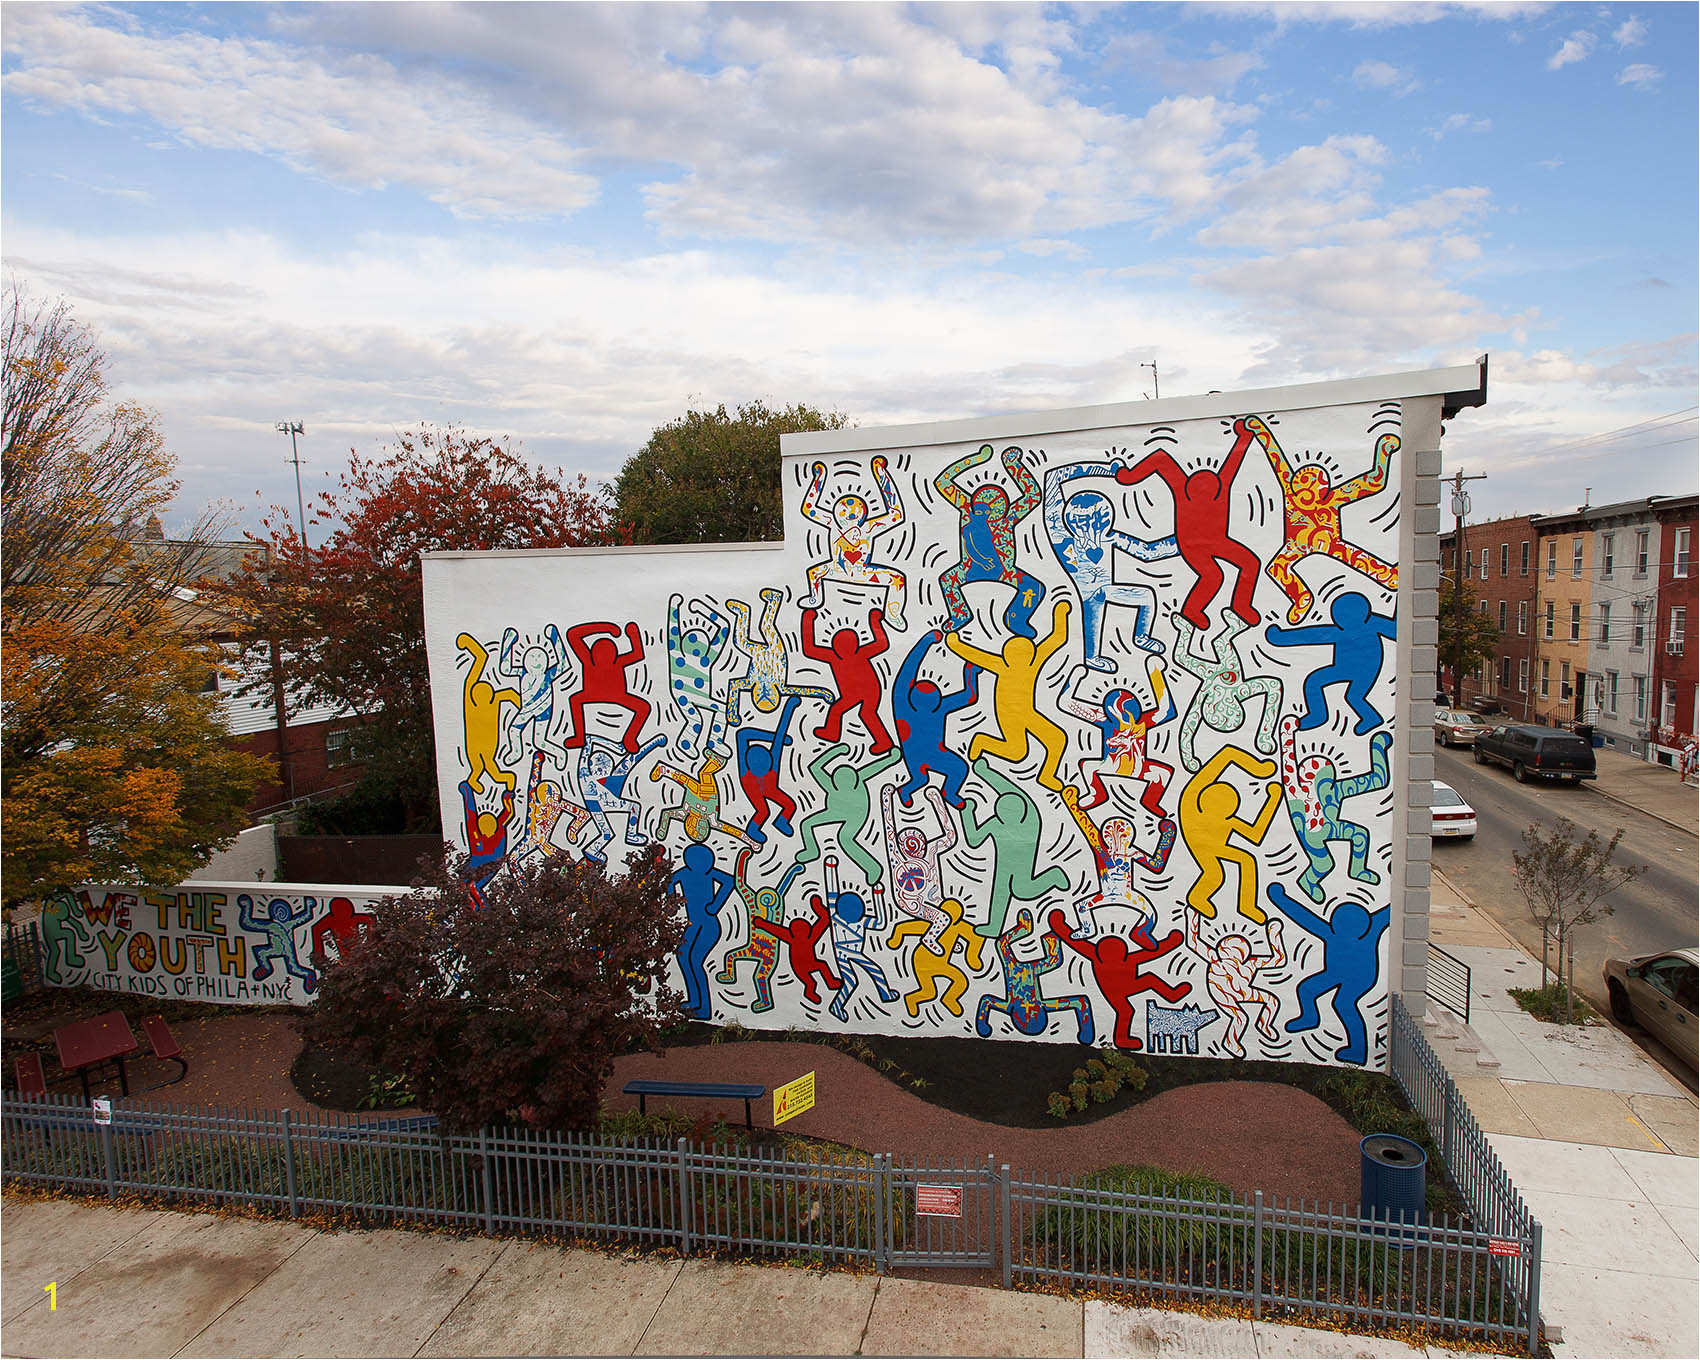 Originally created in 1987 We the Youth is the only Keith Haring collaborative public mural remaining intact and on its original site